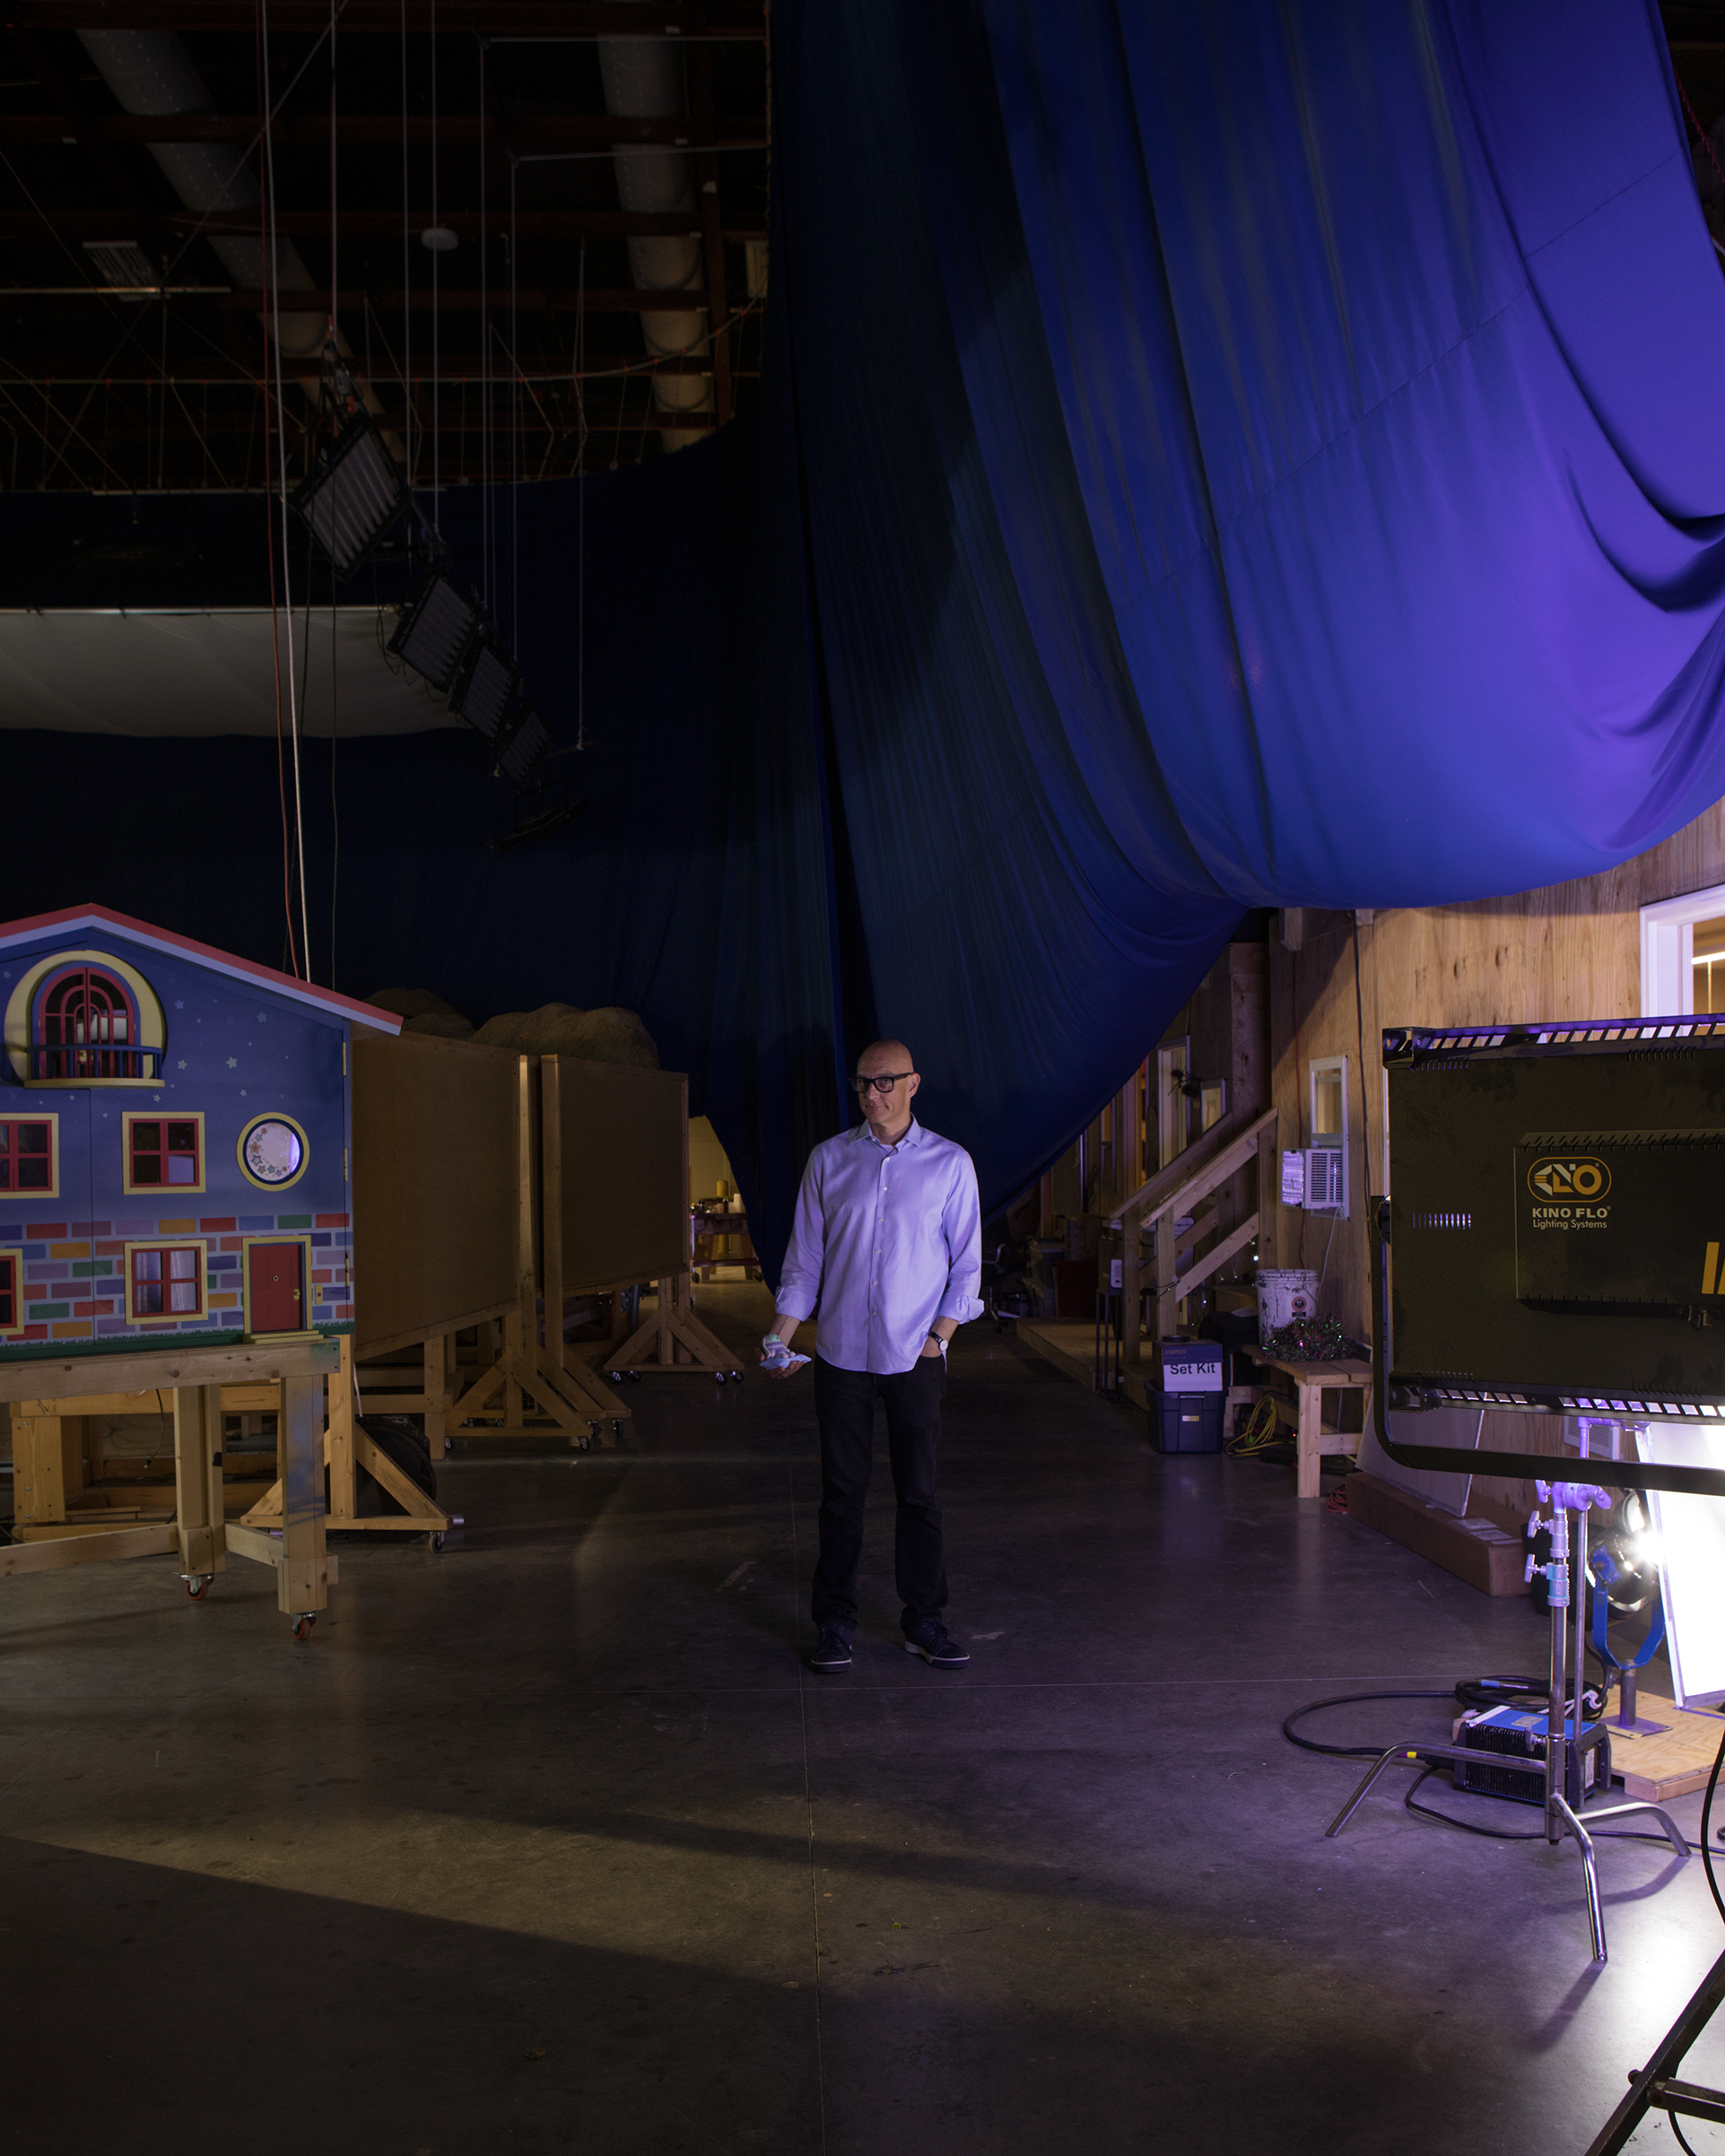 Teletubbies co-creator Andrew Davenport behind the scenes on his new project 'Moon and Me', which will premiere later this year. Photographed on location at Pinewood Atlanta Studios.